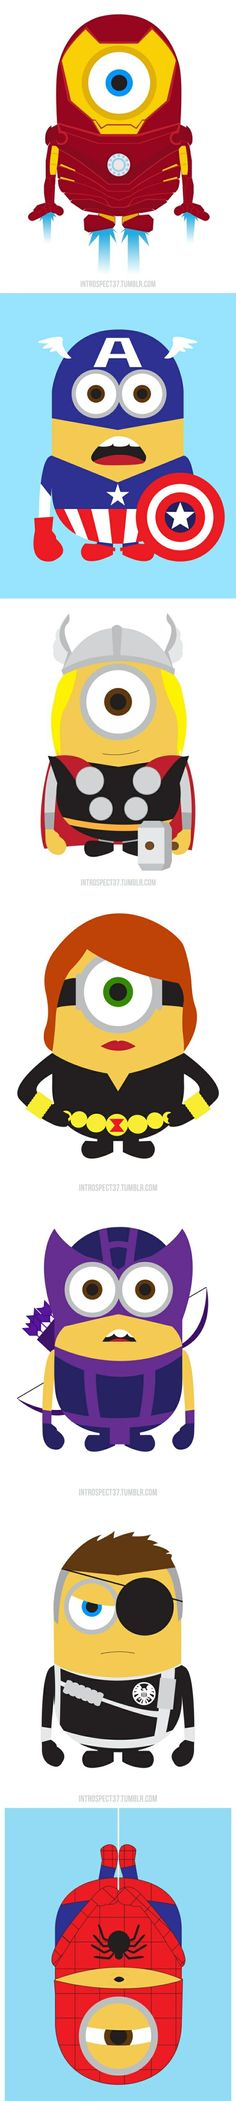 """Despicable Me"" Minions As Marvel Superheroes The minions of the movie ""Despicable Me"" in their new alternate heroic adventures. By Kevin Magic Lam.Minions as super heros -_- flipping awesome Minions Love, My Minion, Minions Pics, Marvel Dc Comics, Marvel Avengers, Minion Avengers, Marvel Funny, Anime Echii, Geeks"